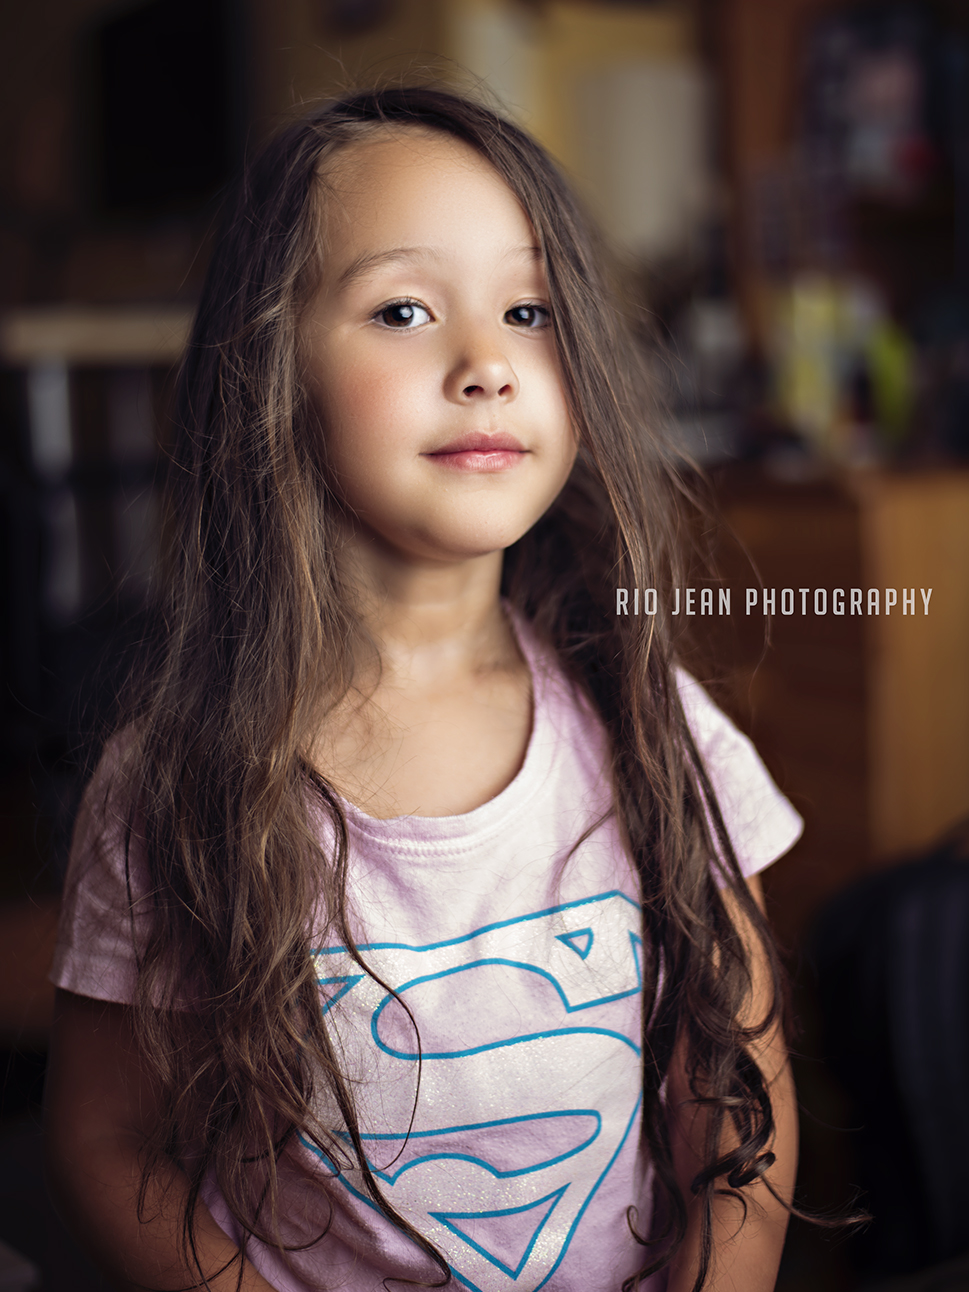 Rio Jean Photography child portrait photographer Studio lighting